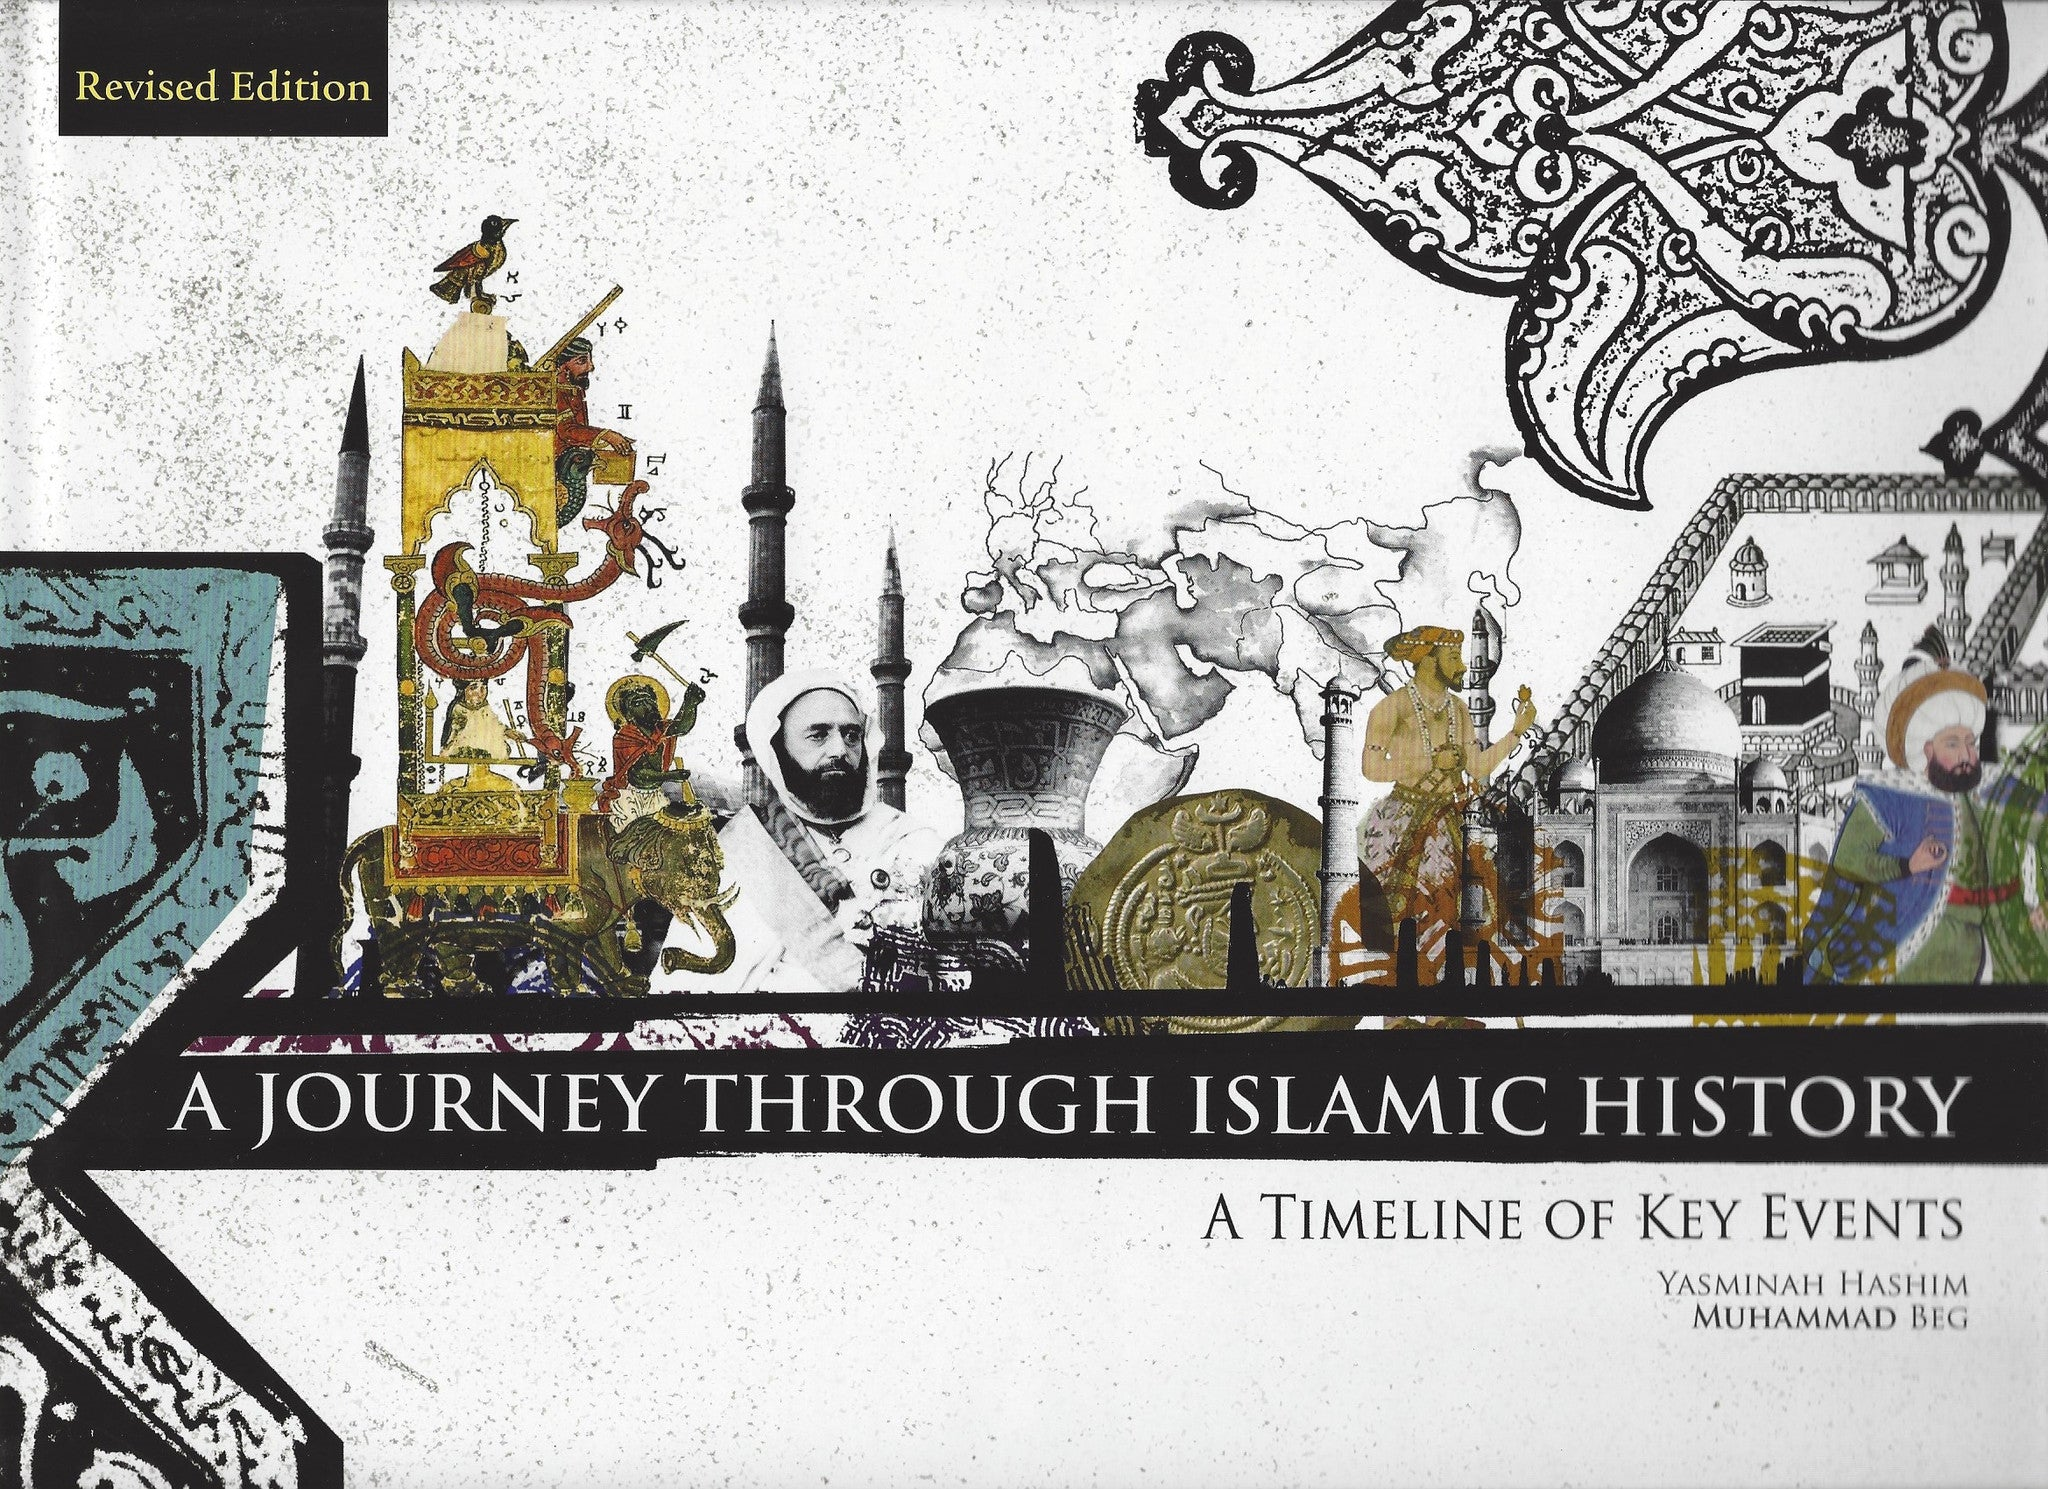 A Journey Through Islamic History: A Timeline of Key Events , Book - Daybreak Press Global Bookshop, Daybreak Press Global Bookshop